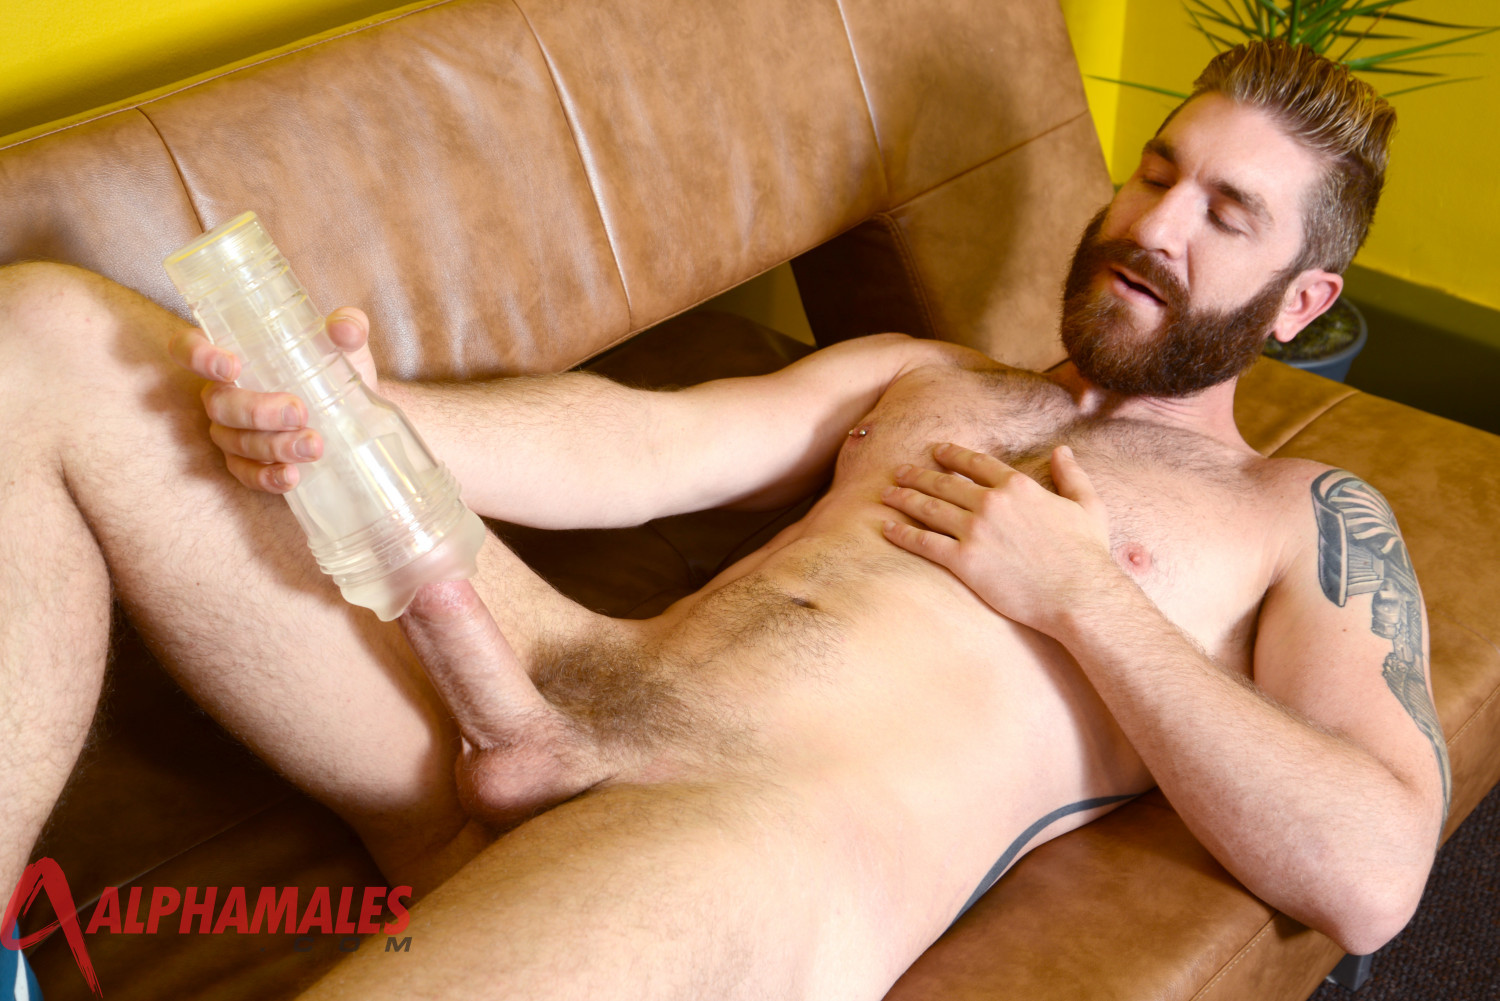 AlphaMales-Geoffrey-Paine-Big-Cock-Fleshlight-Fleshjack-Amateur-Gay-Porn-06 Amateur Hairy Muscle Stud Geoffrey Paine With Big Cock and Fleshjack